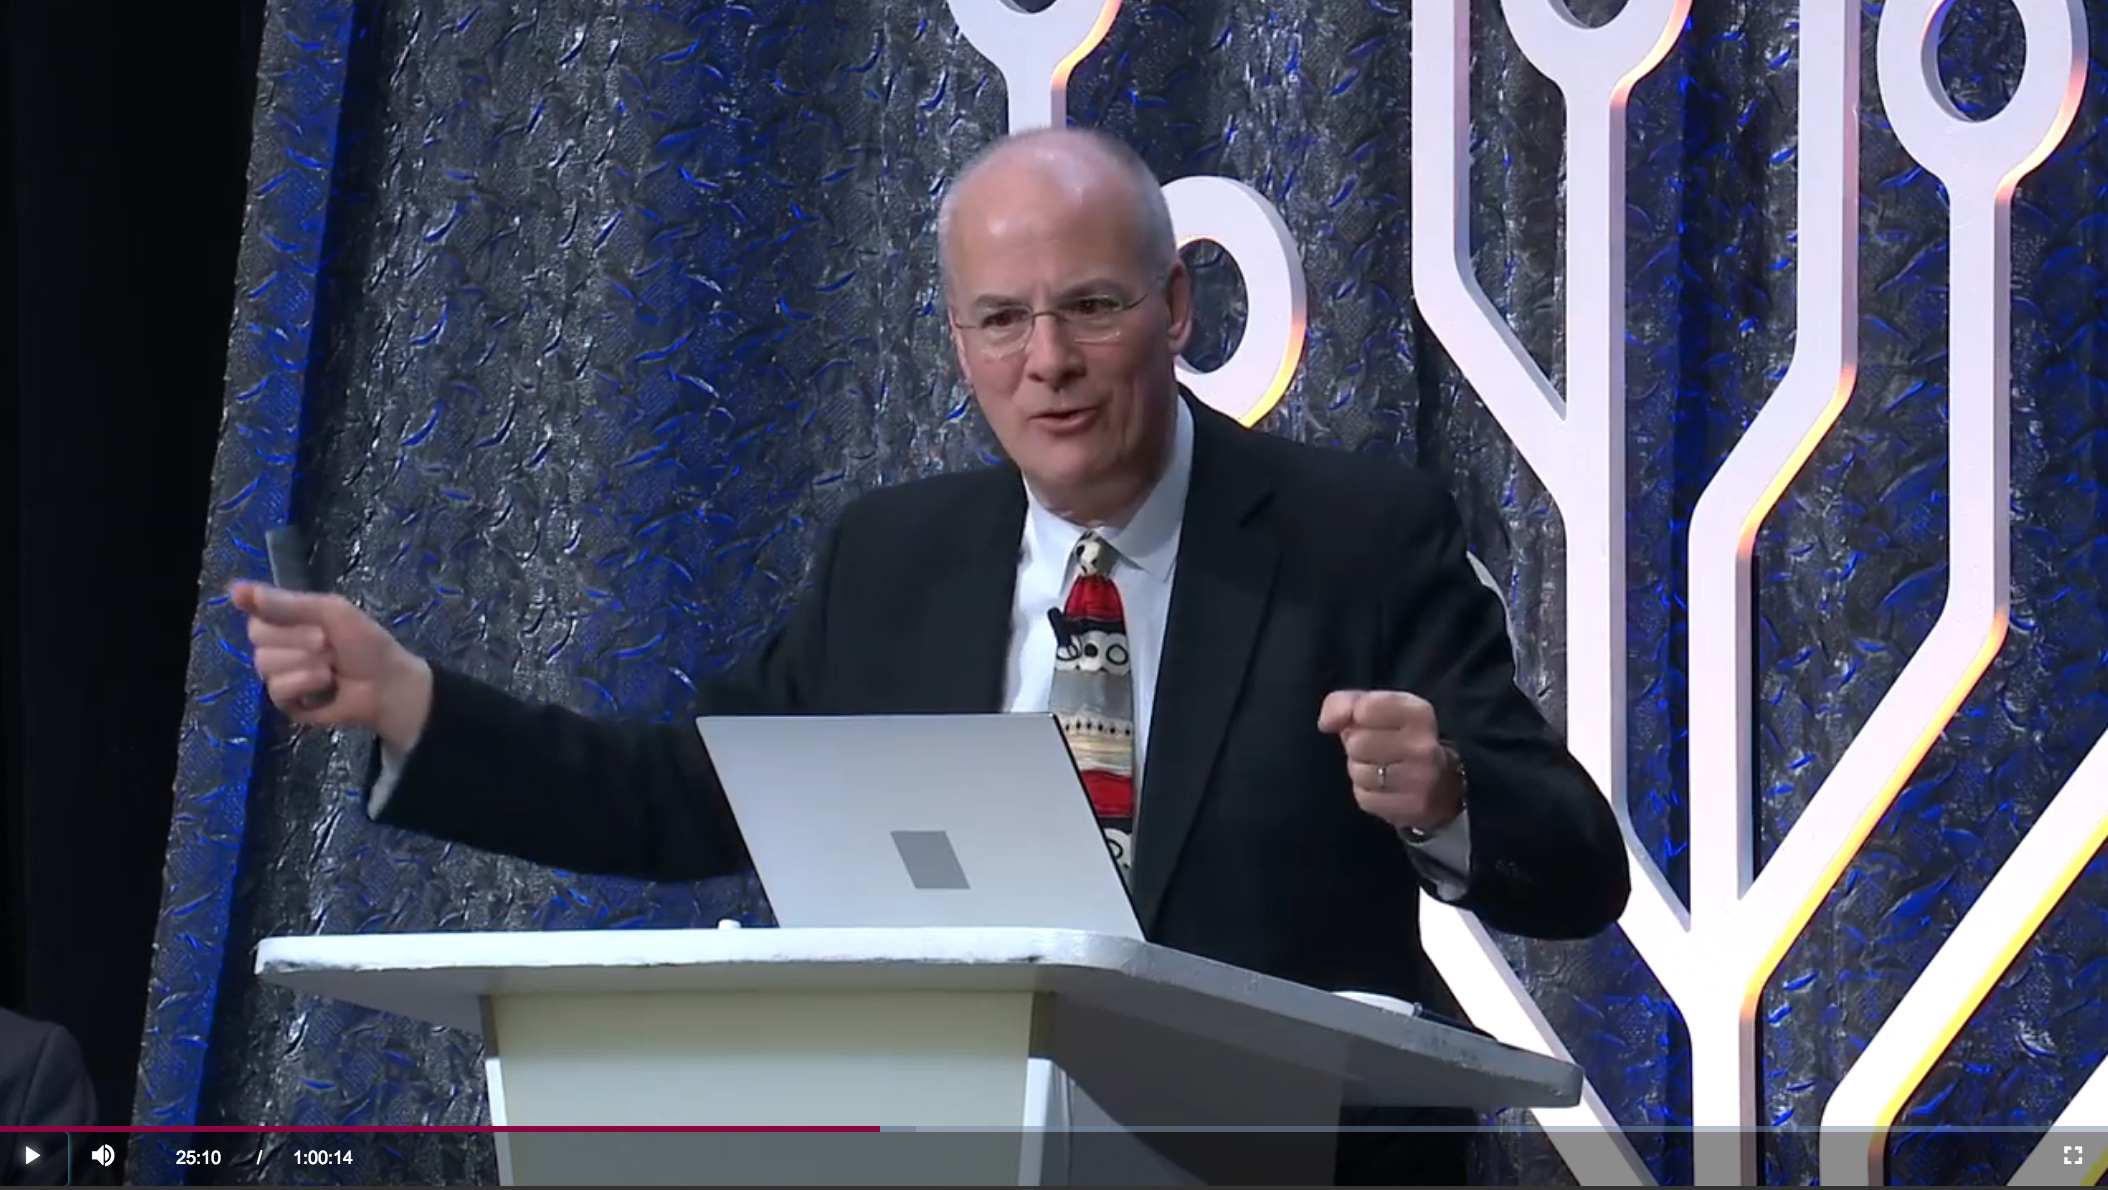 Genealogy expert Curt B. Witcher during his presentation at RootsTech 2019